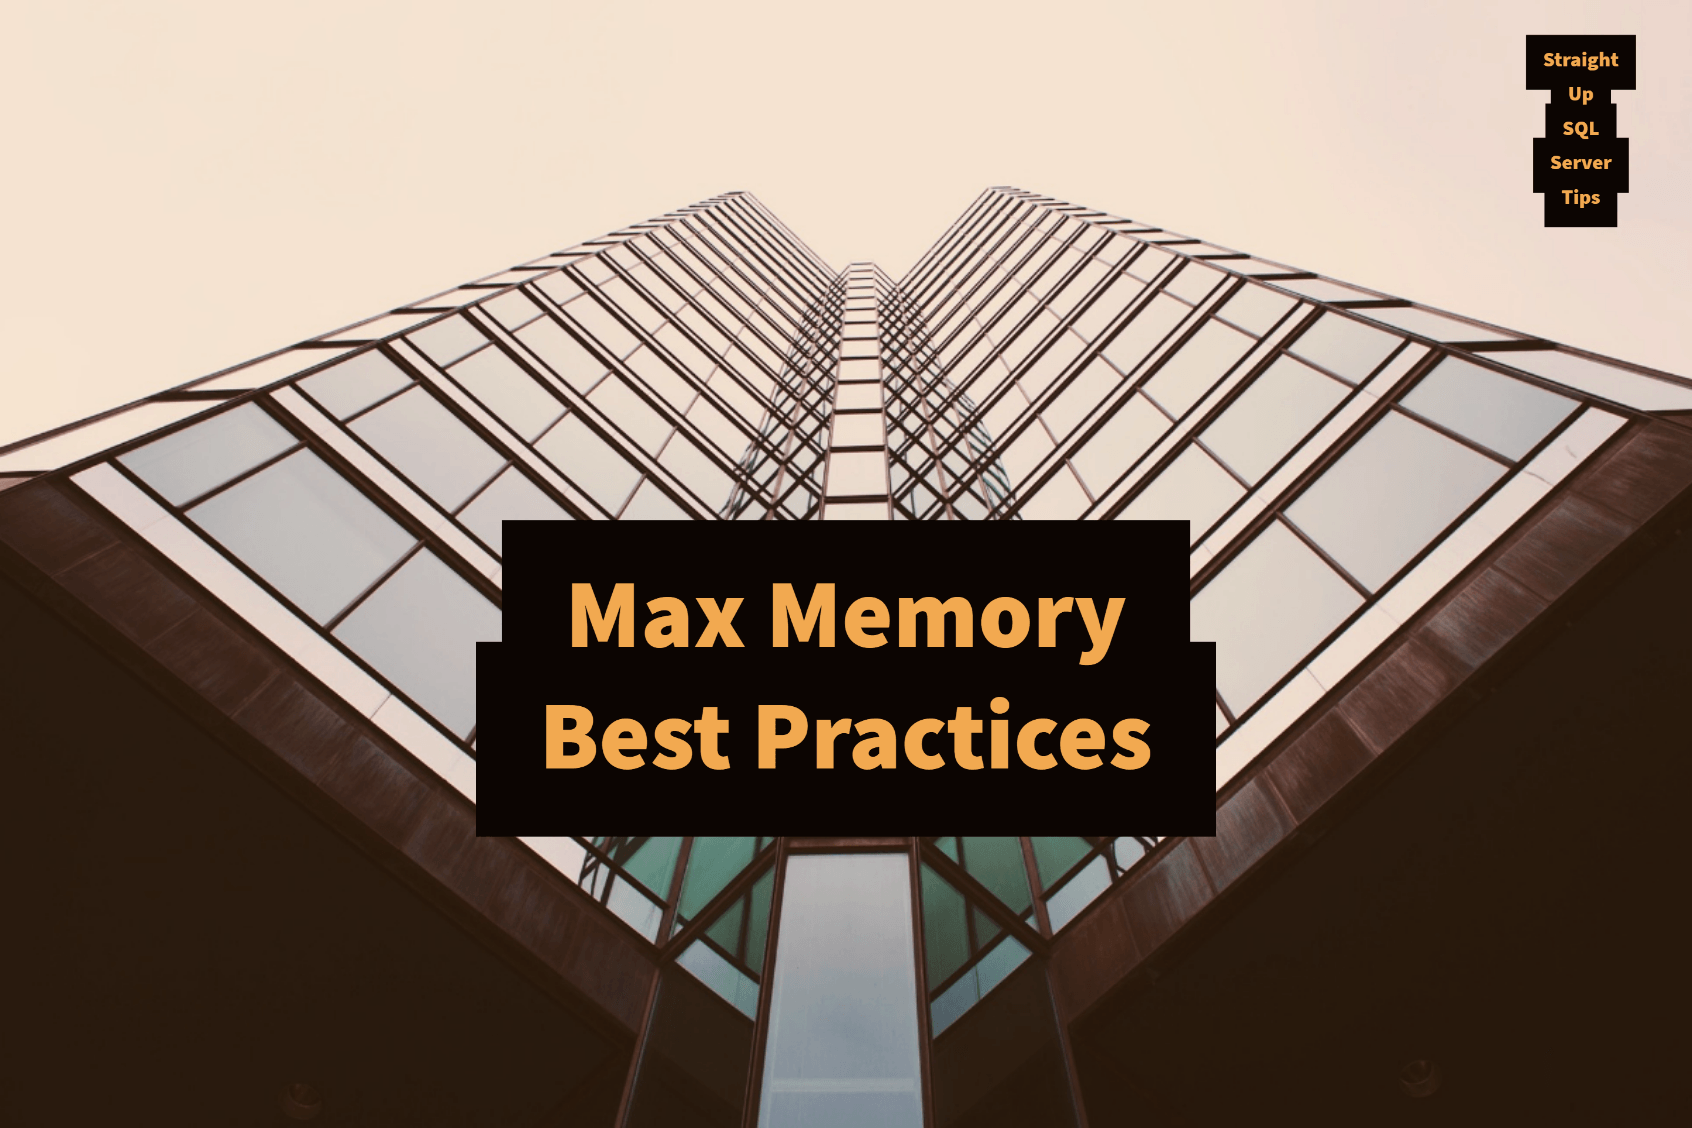 SQL Server Max Memory Best Practices